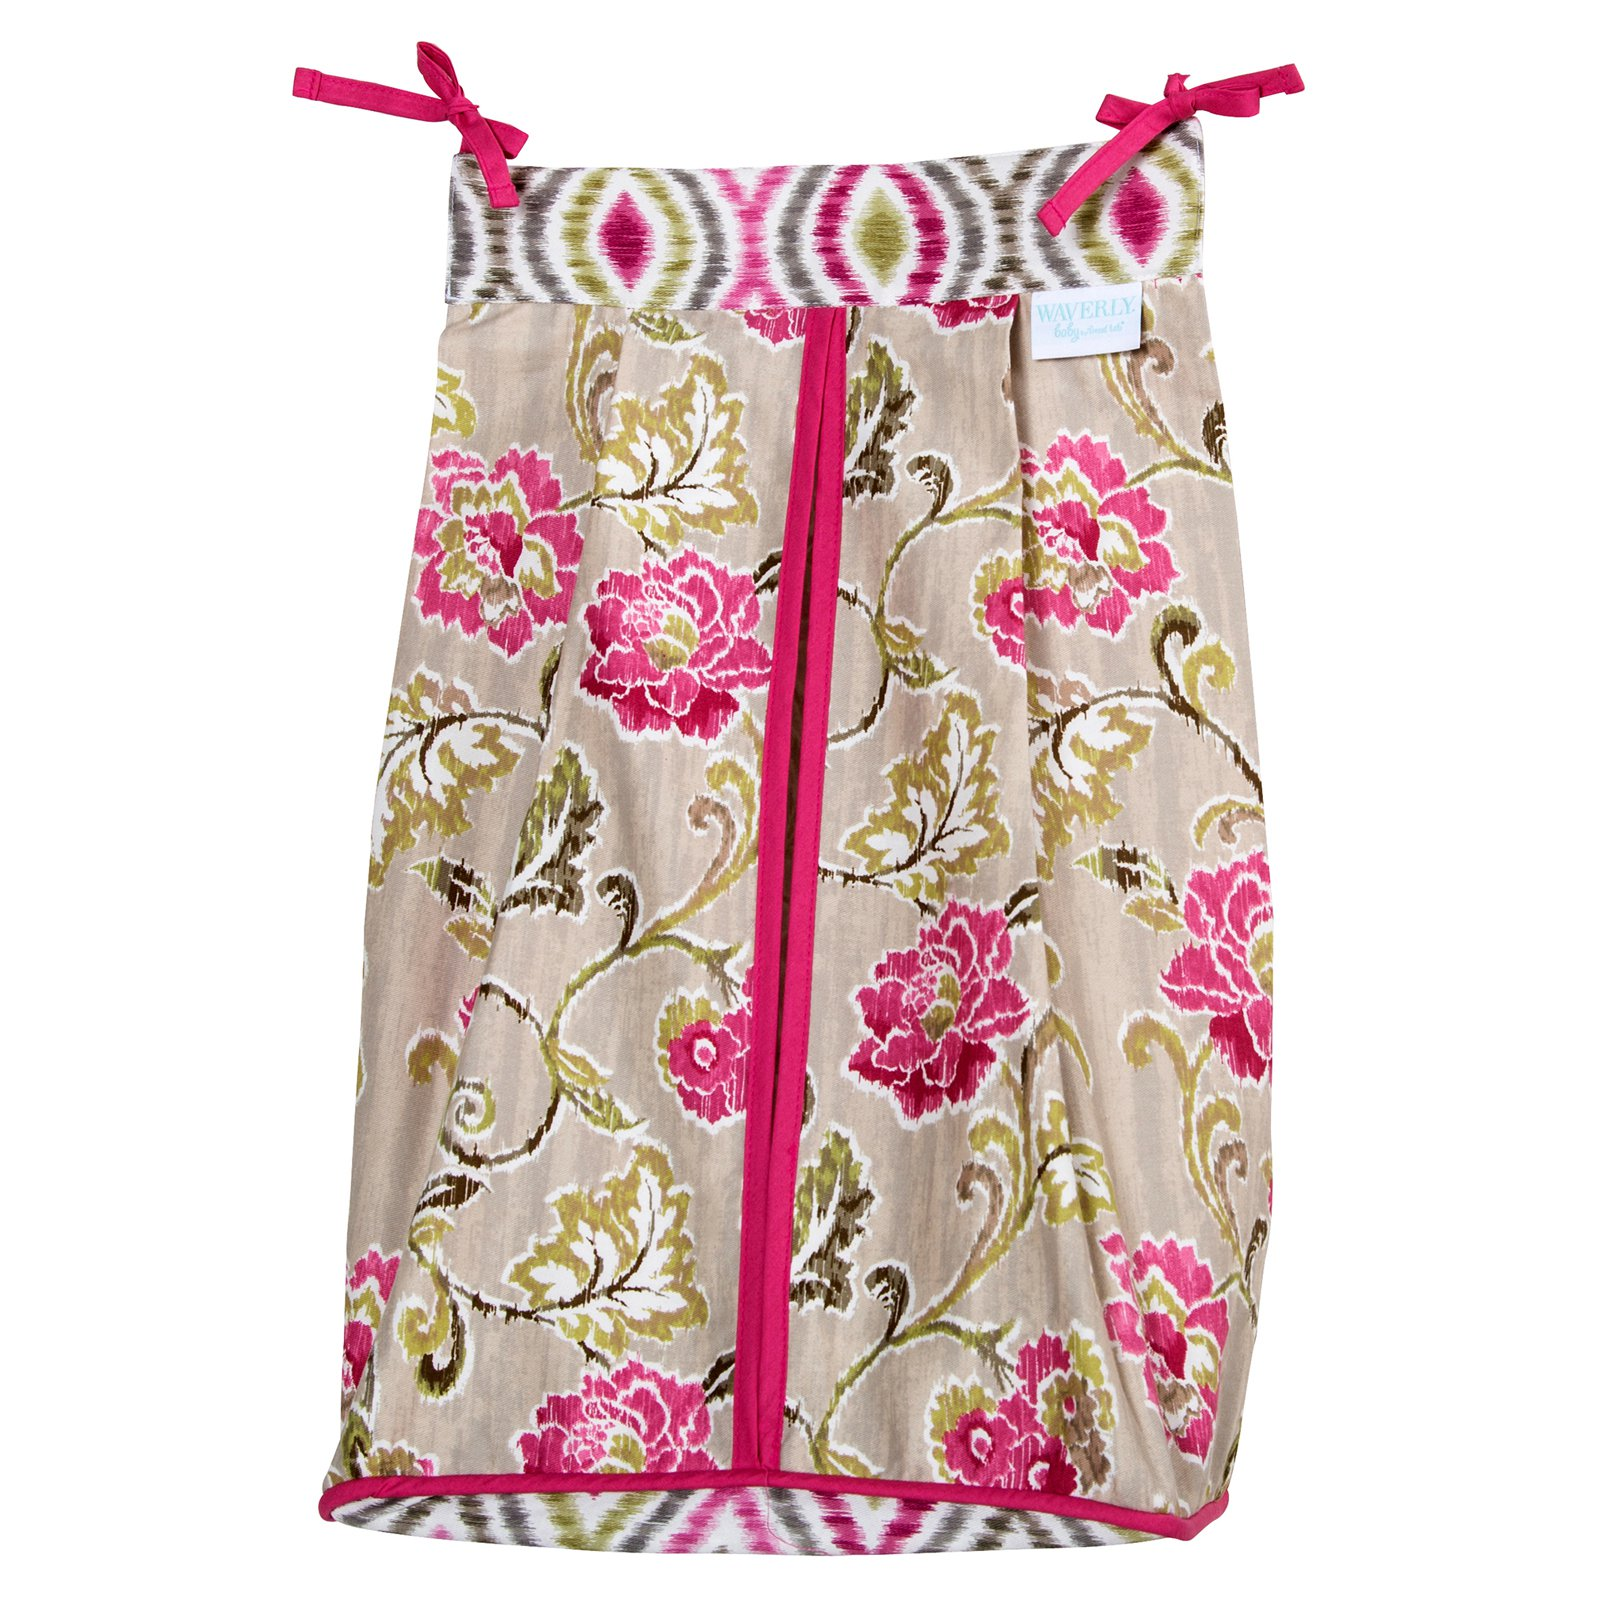 Trend Lab Waverly Jazzberry Diaper Stacker by Trend Lab